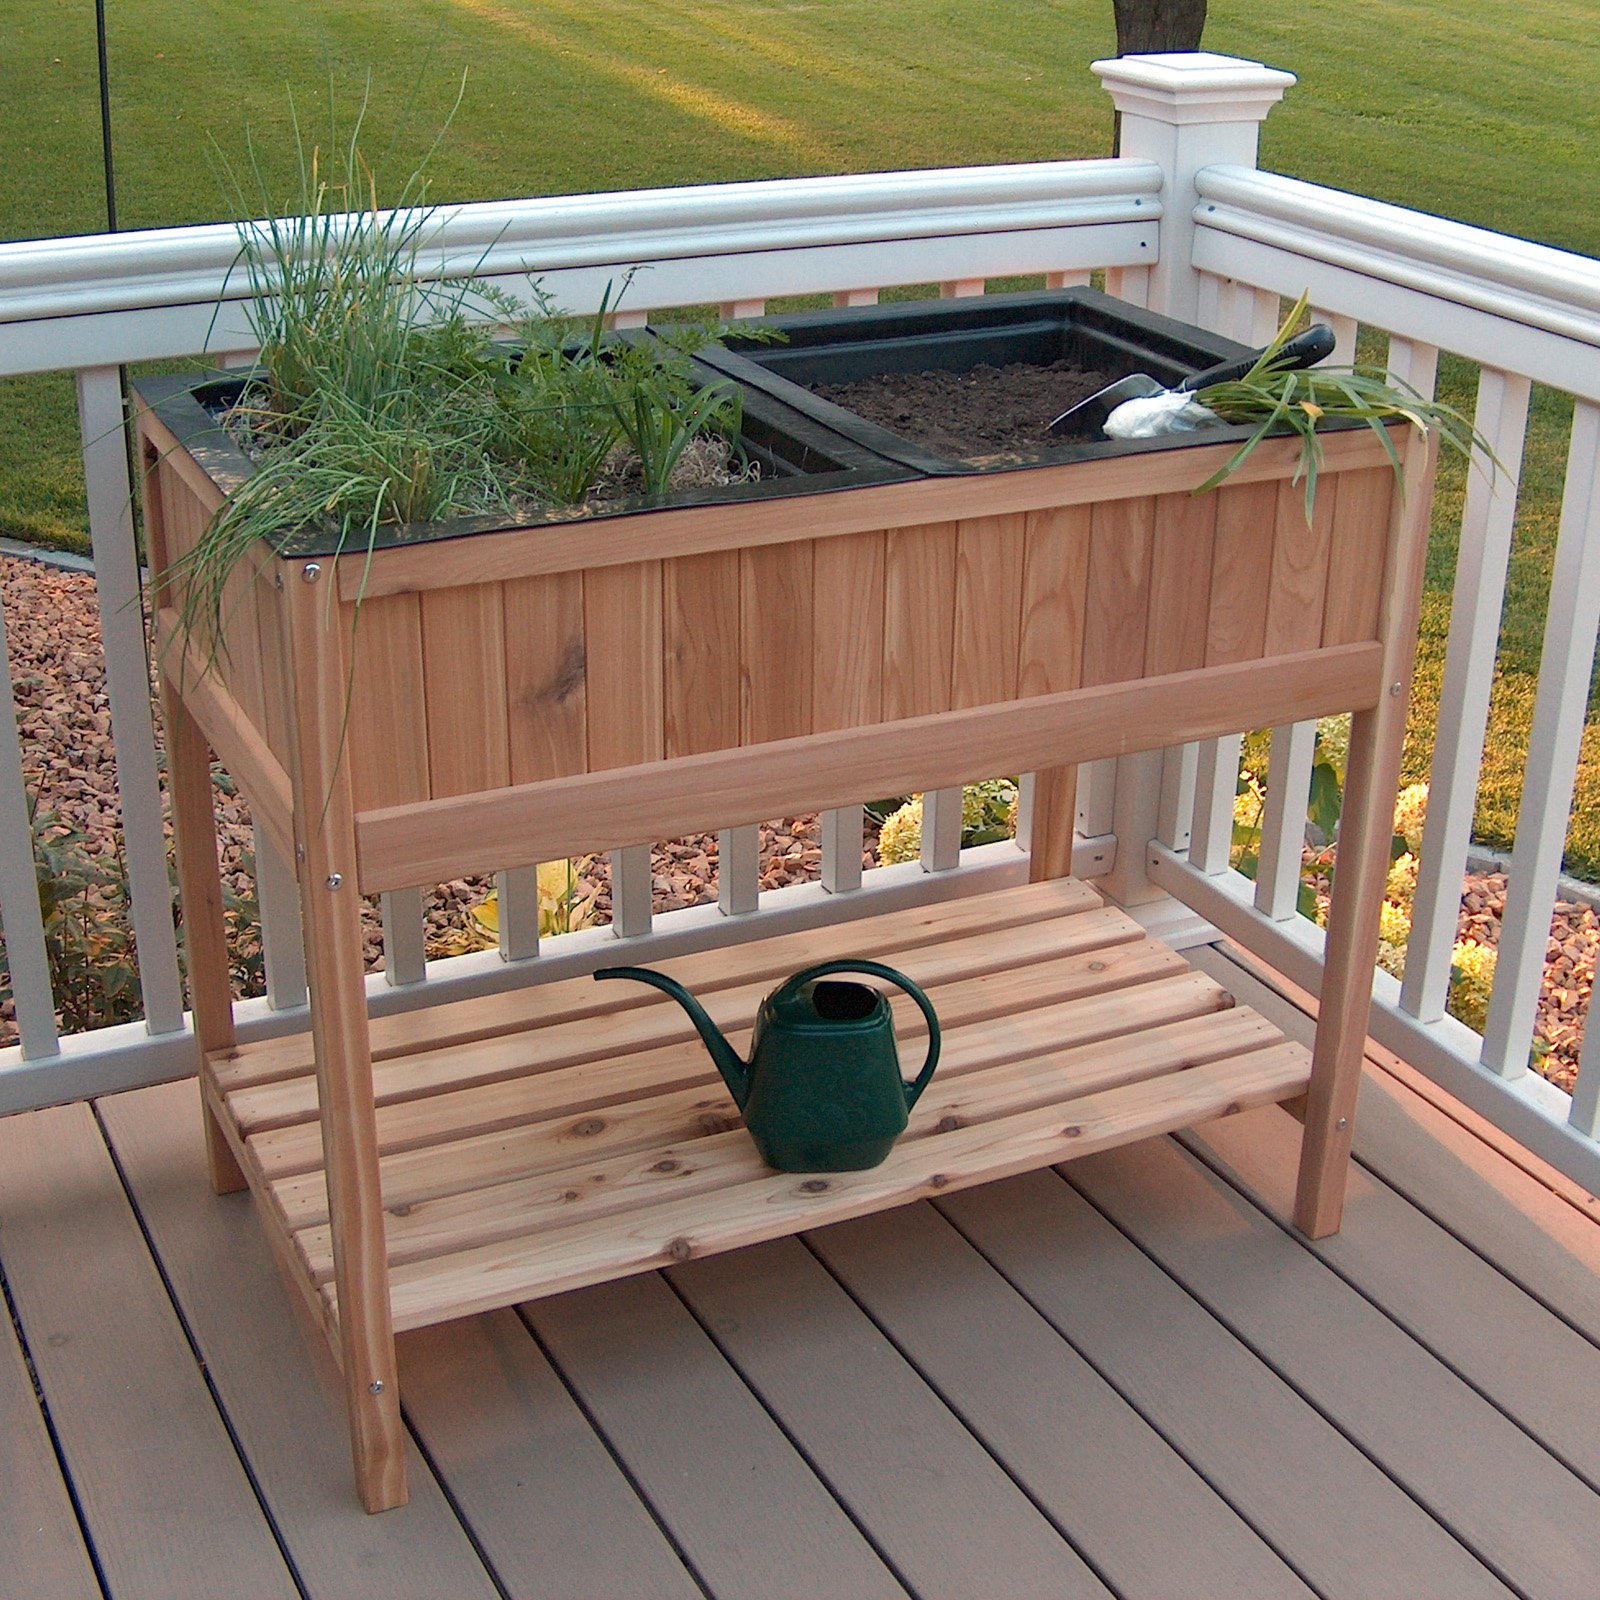 Image of Prairie Leisure Herb Garden Raised Planter with 2 Liners